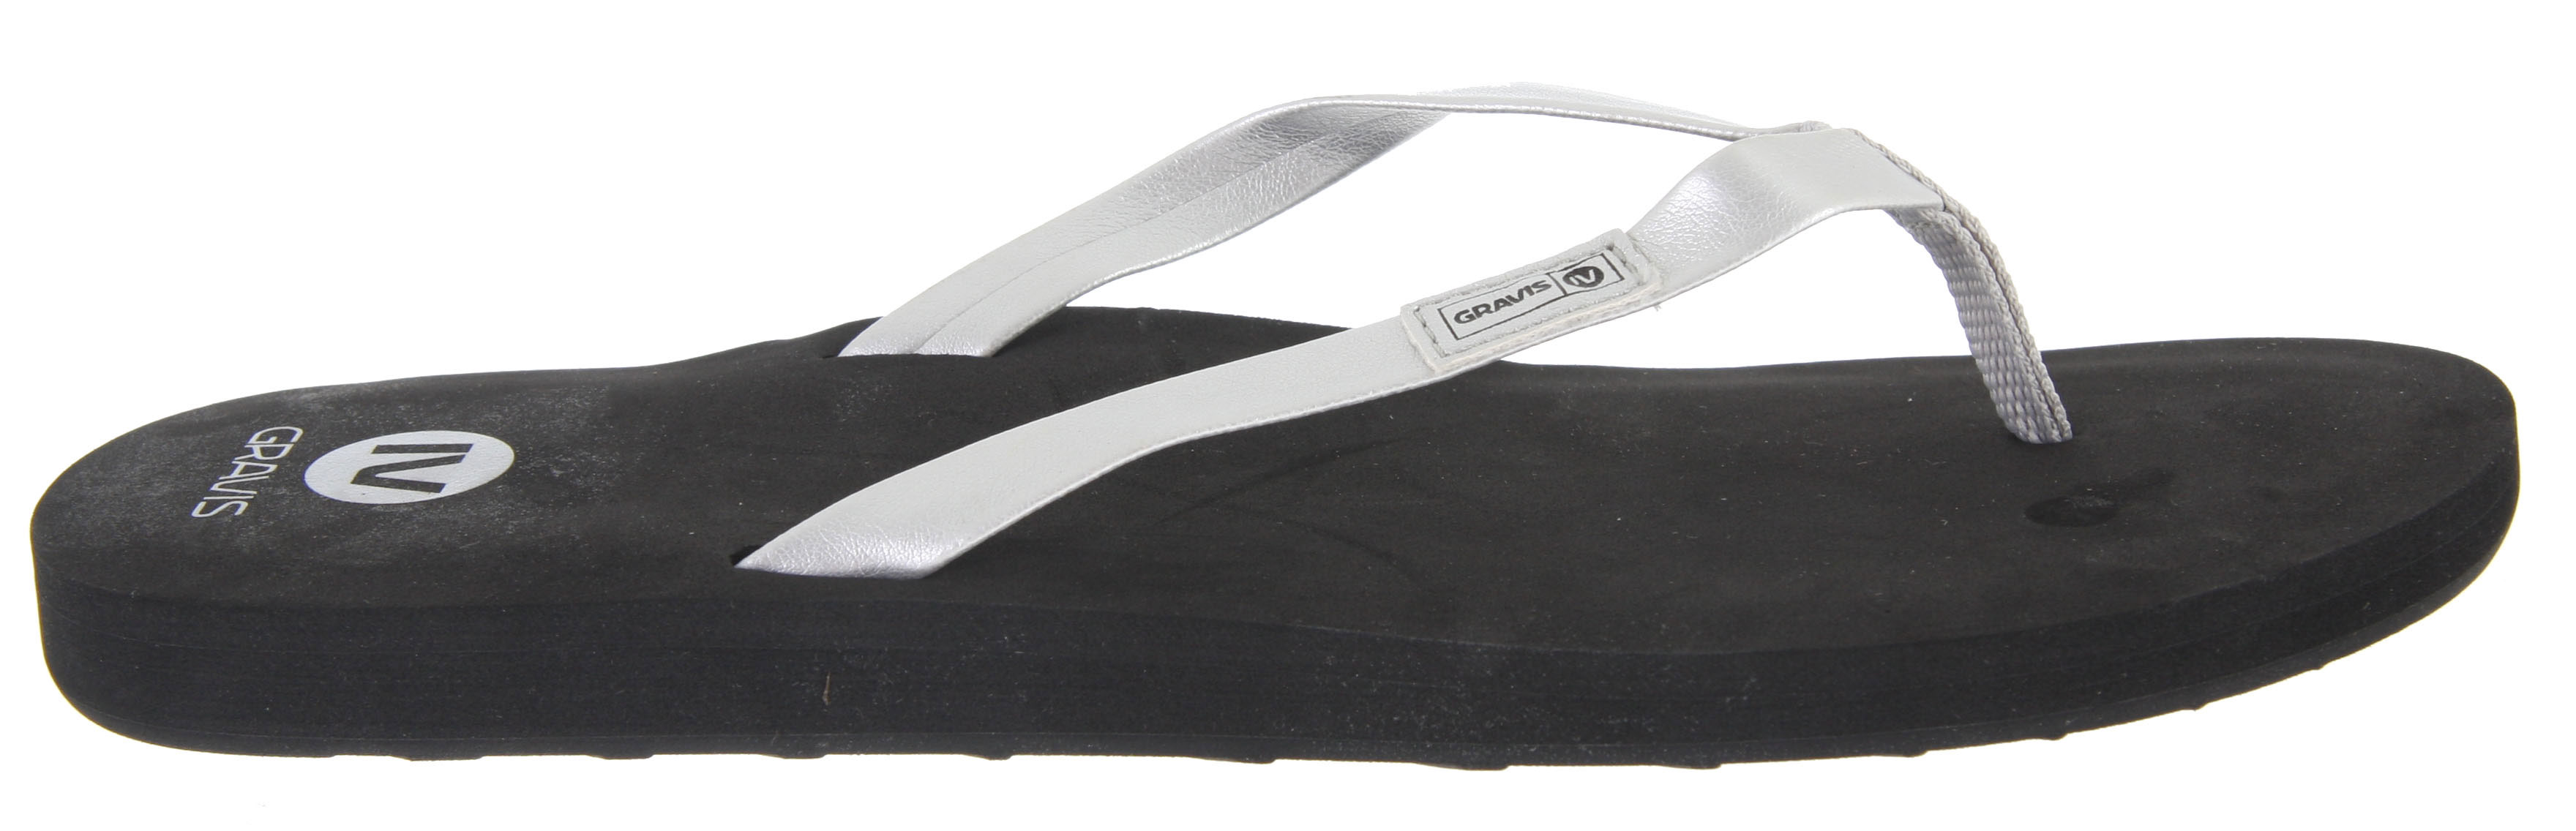 Surf The Gravis Spritzer Sandals offers such a fresh look, it's perfect for summer. Featuring a light T-strap design, its dainty appearance adds a nice feminine touch. The arch support provides great comfort, perfect to wear around town. Hit the beach with the Gravis Spritzer Sandals this summer and enjoy the sun. You'll look like you're ready for summer.Key Features of the Gravis Spritzer Sandals: Thin Webbing Arch Support EVA Topdeck - $13.95